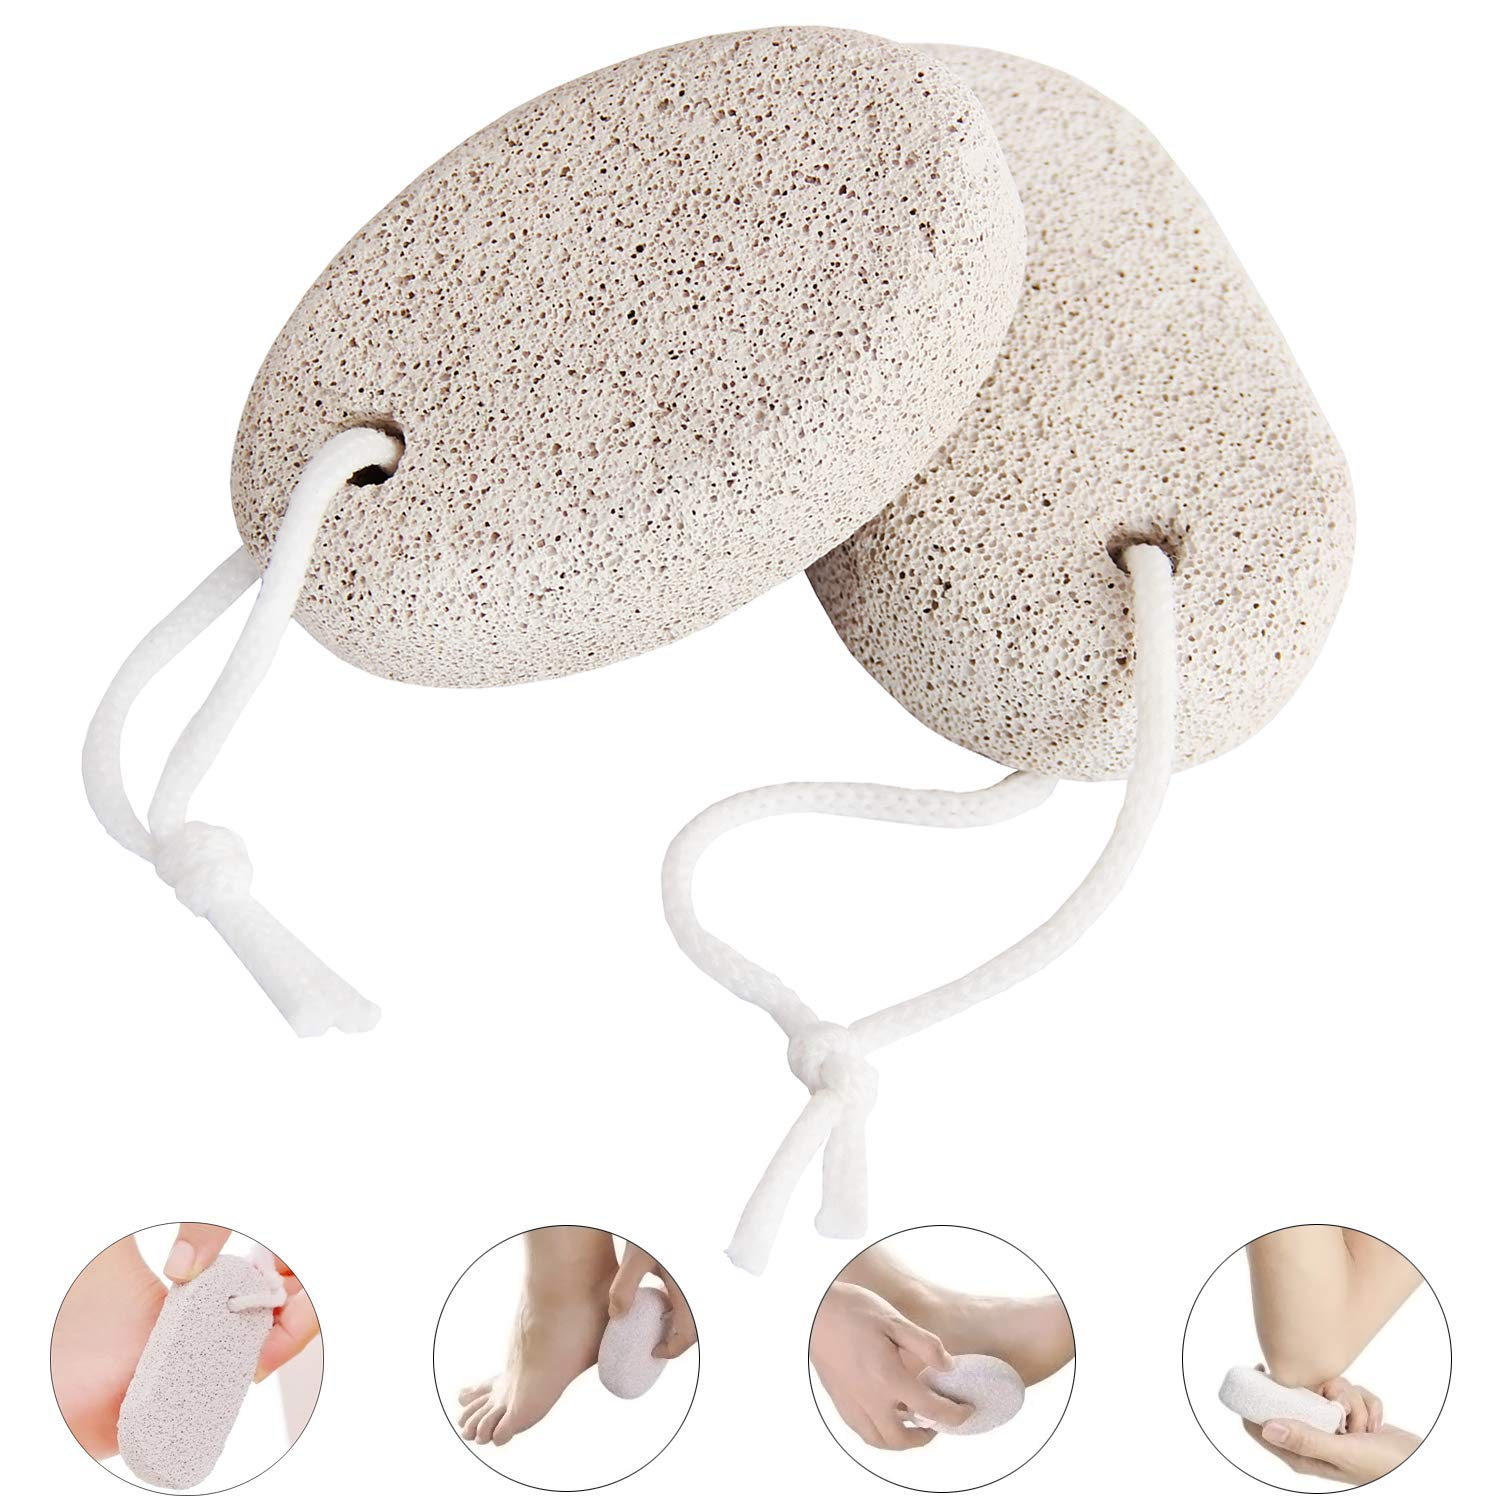 Natural Pumice Stone for Feet Callus Challenge the lowest Manufacturer direct delivery price Scrub PCS Foot Pinowu 2